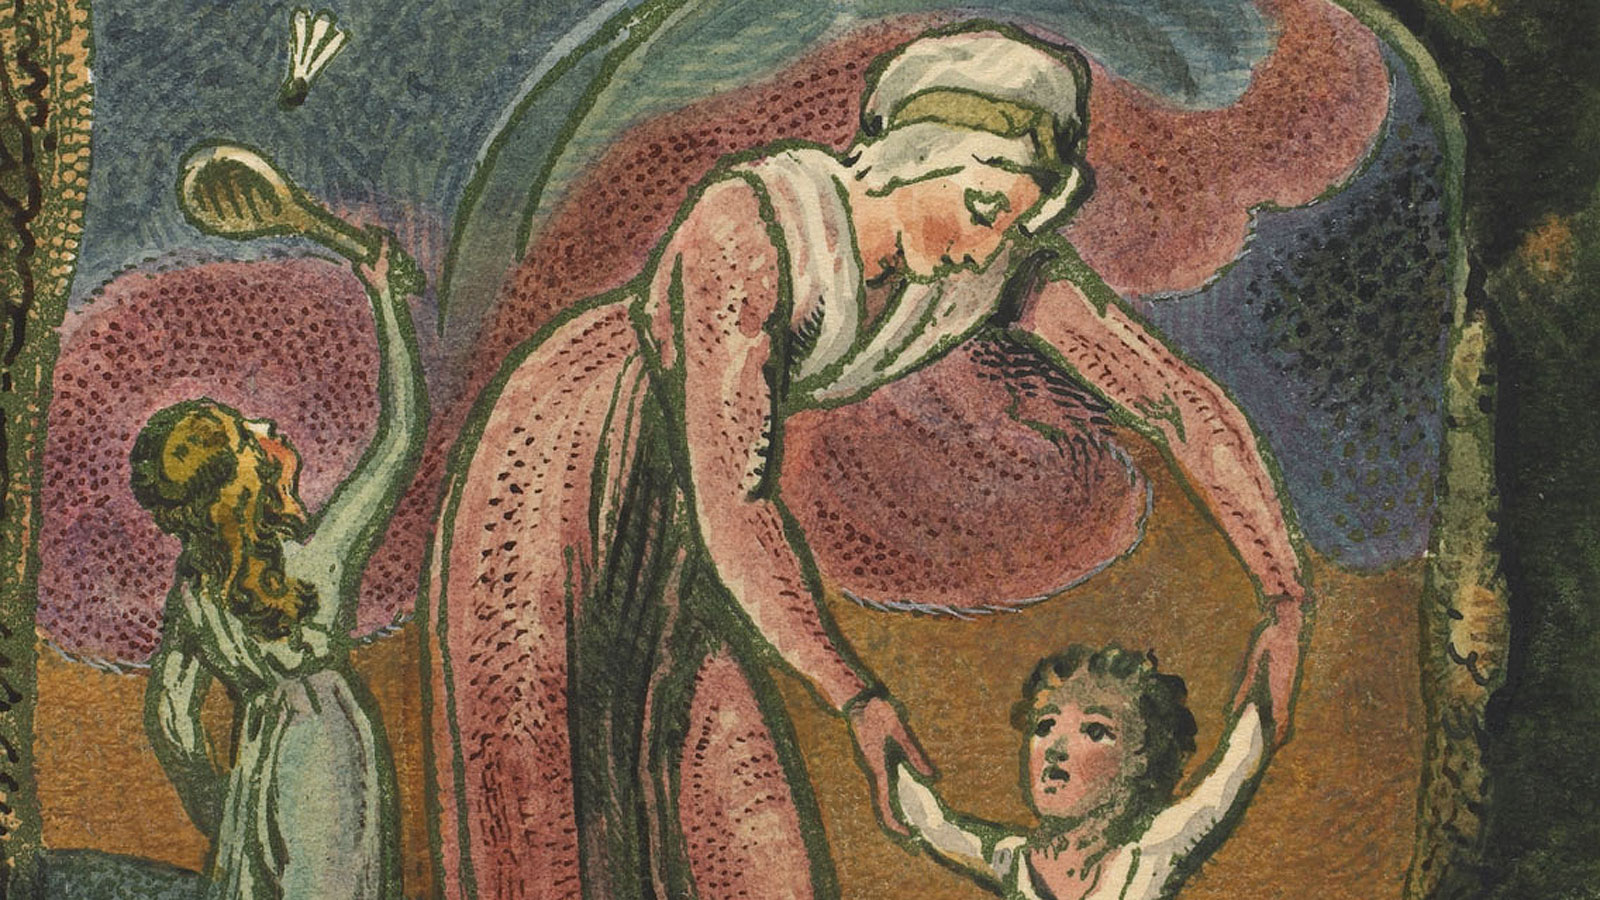 The music of William Blake's poetry